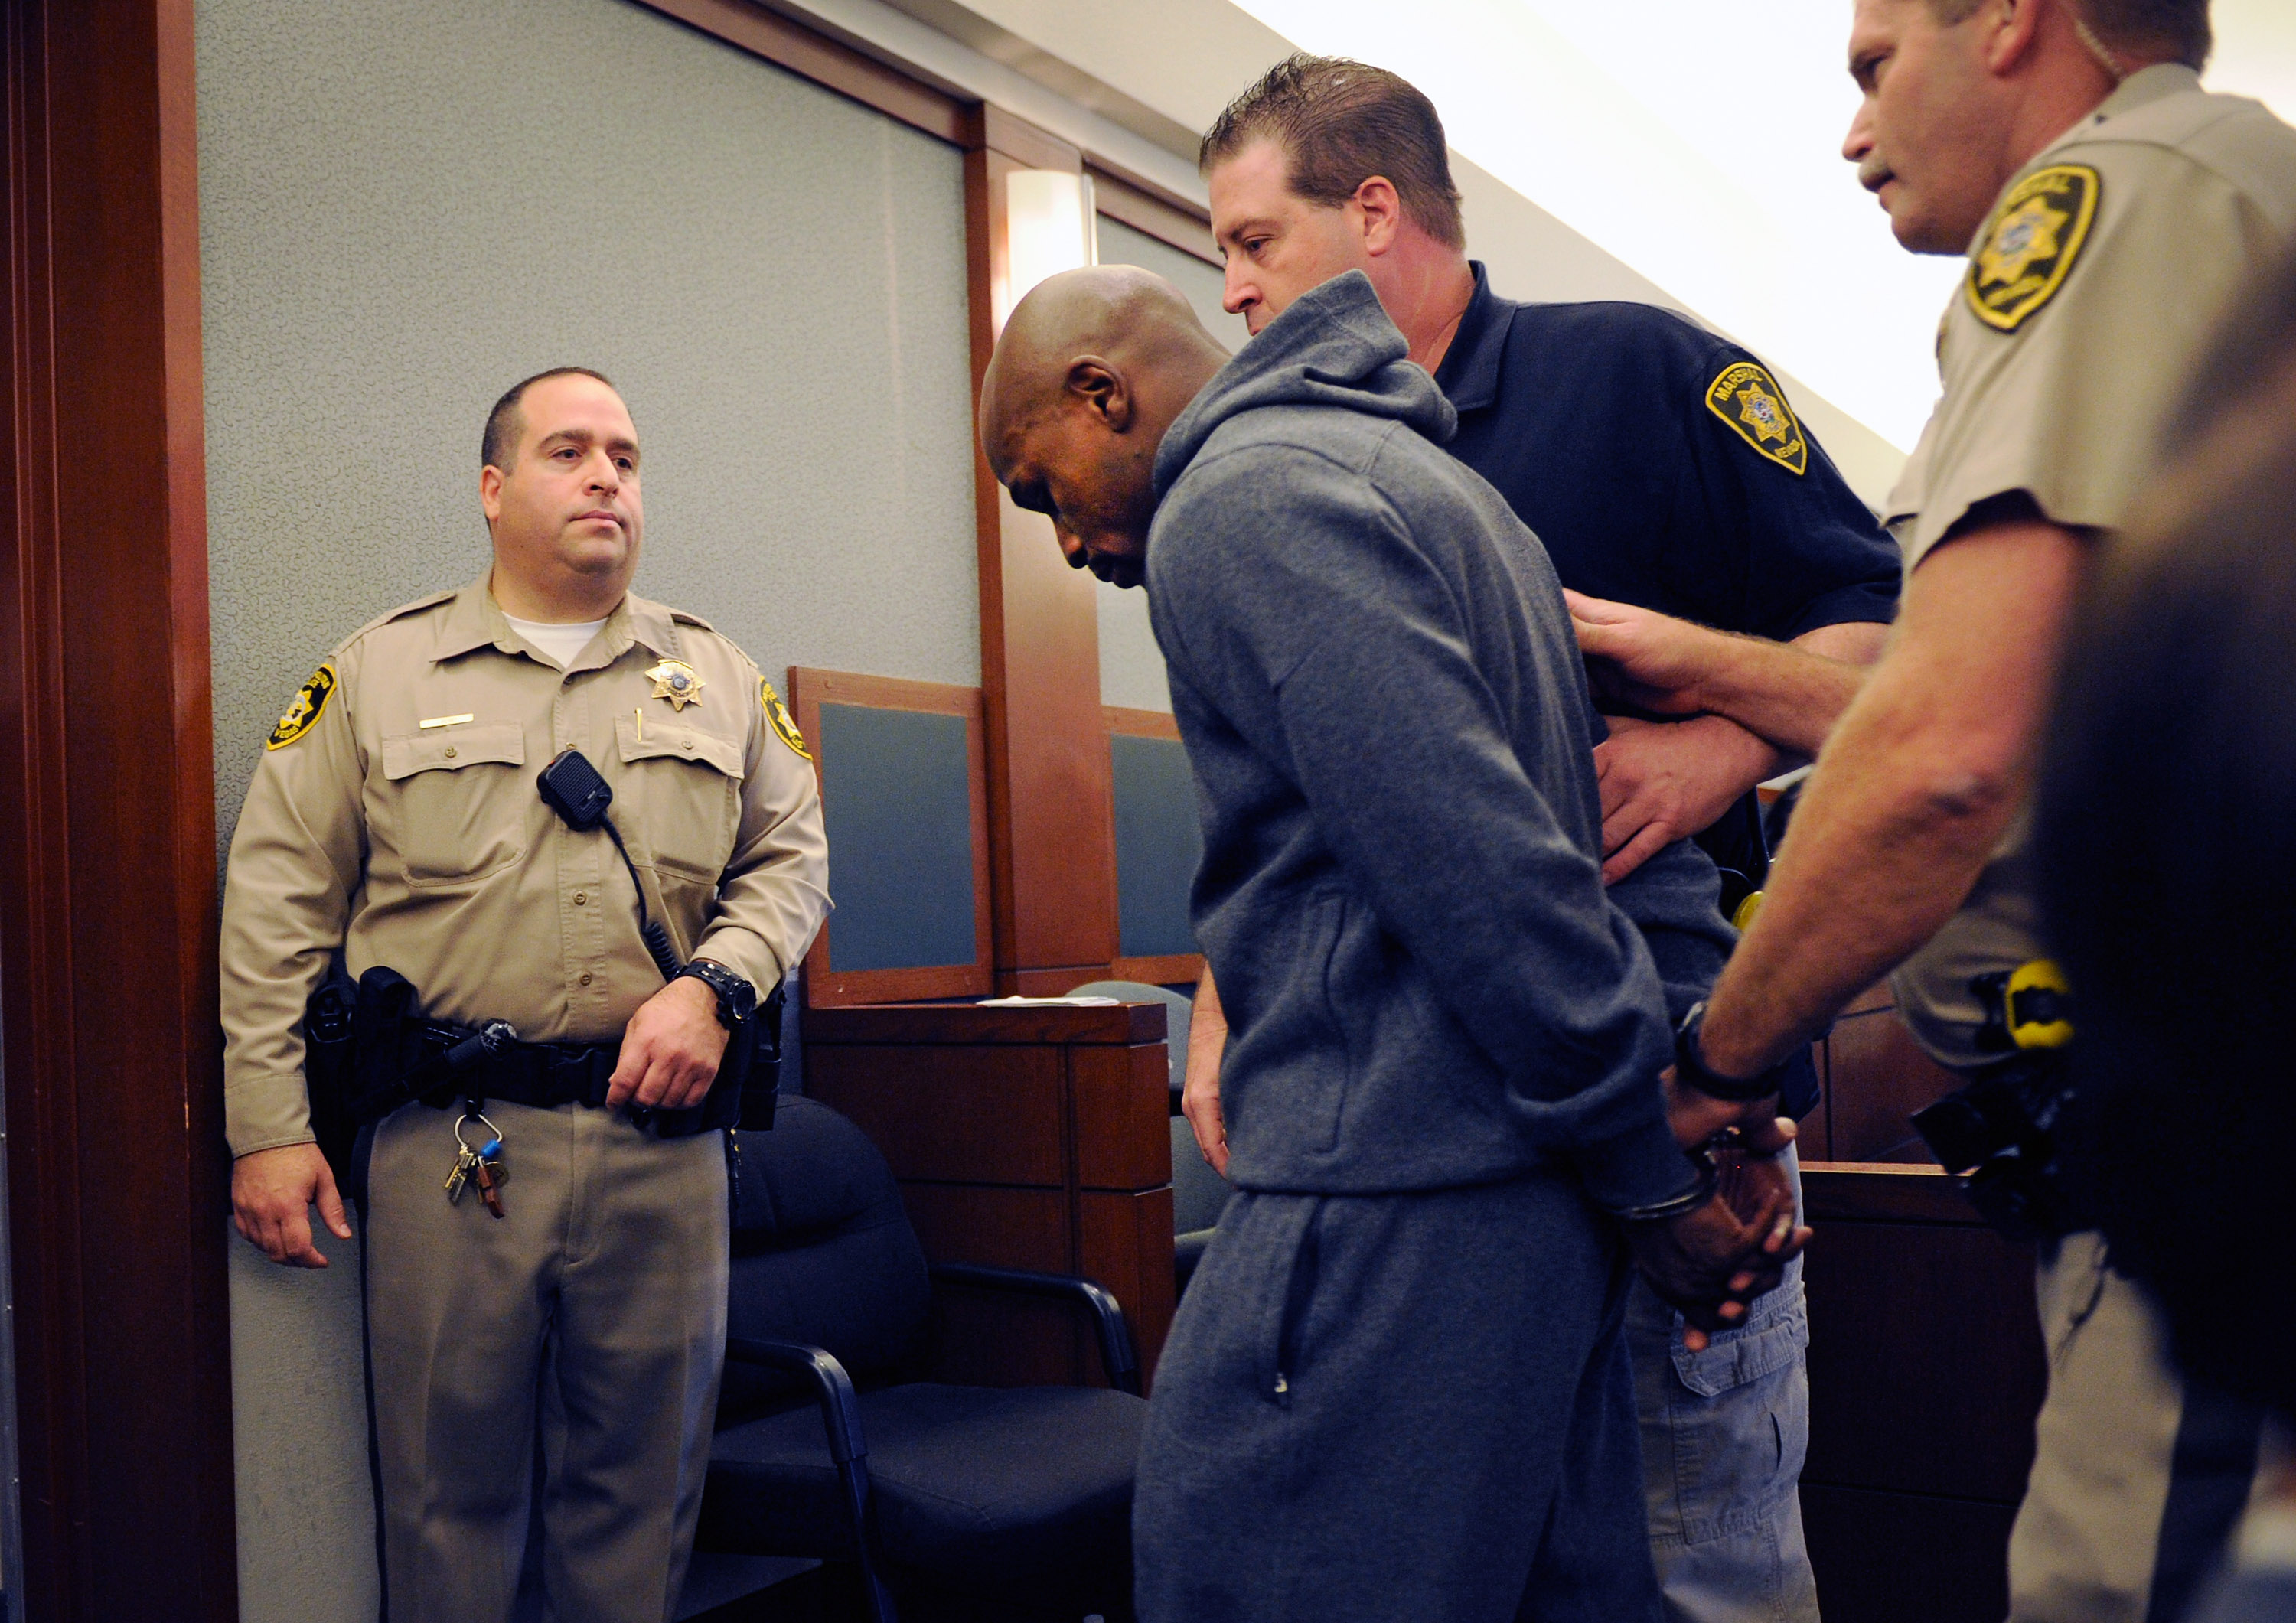 Maywether Jr. is lead away in handcuffs at the Clark County Regional Justice Center as he surrenders to serve a three-month jail sentence in 2012. (Getty)